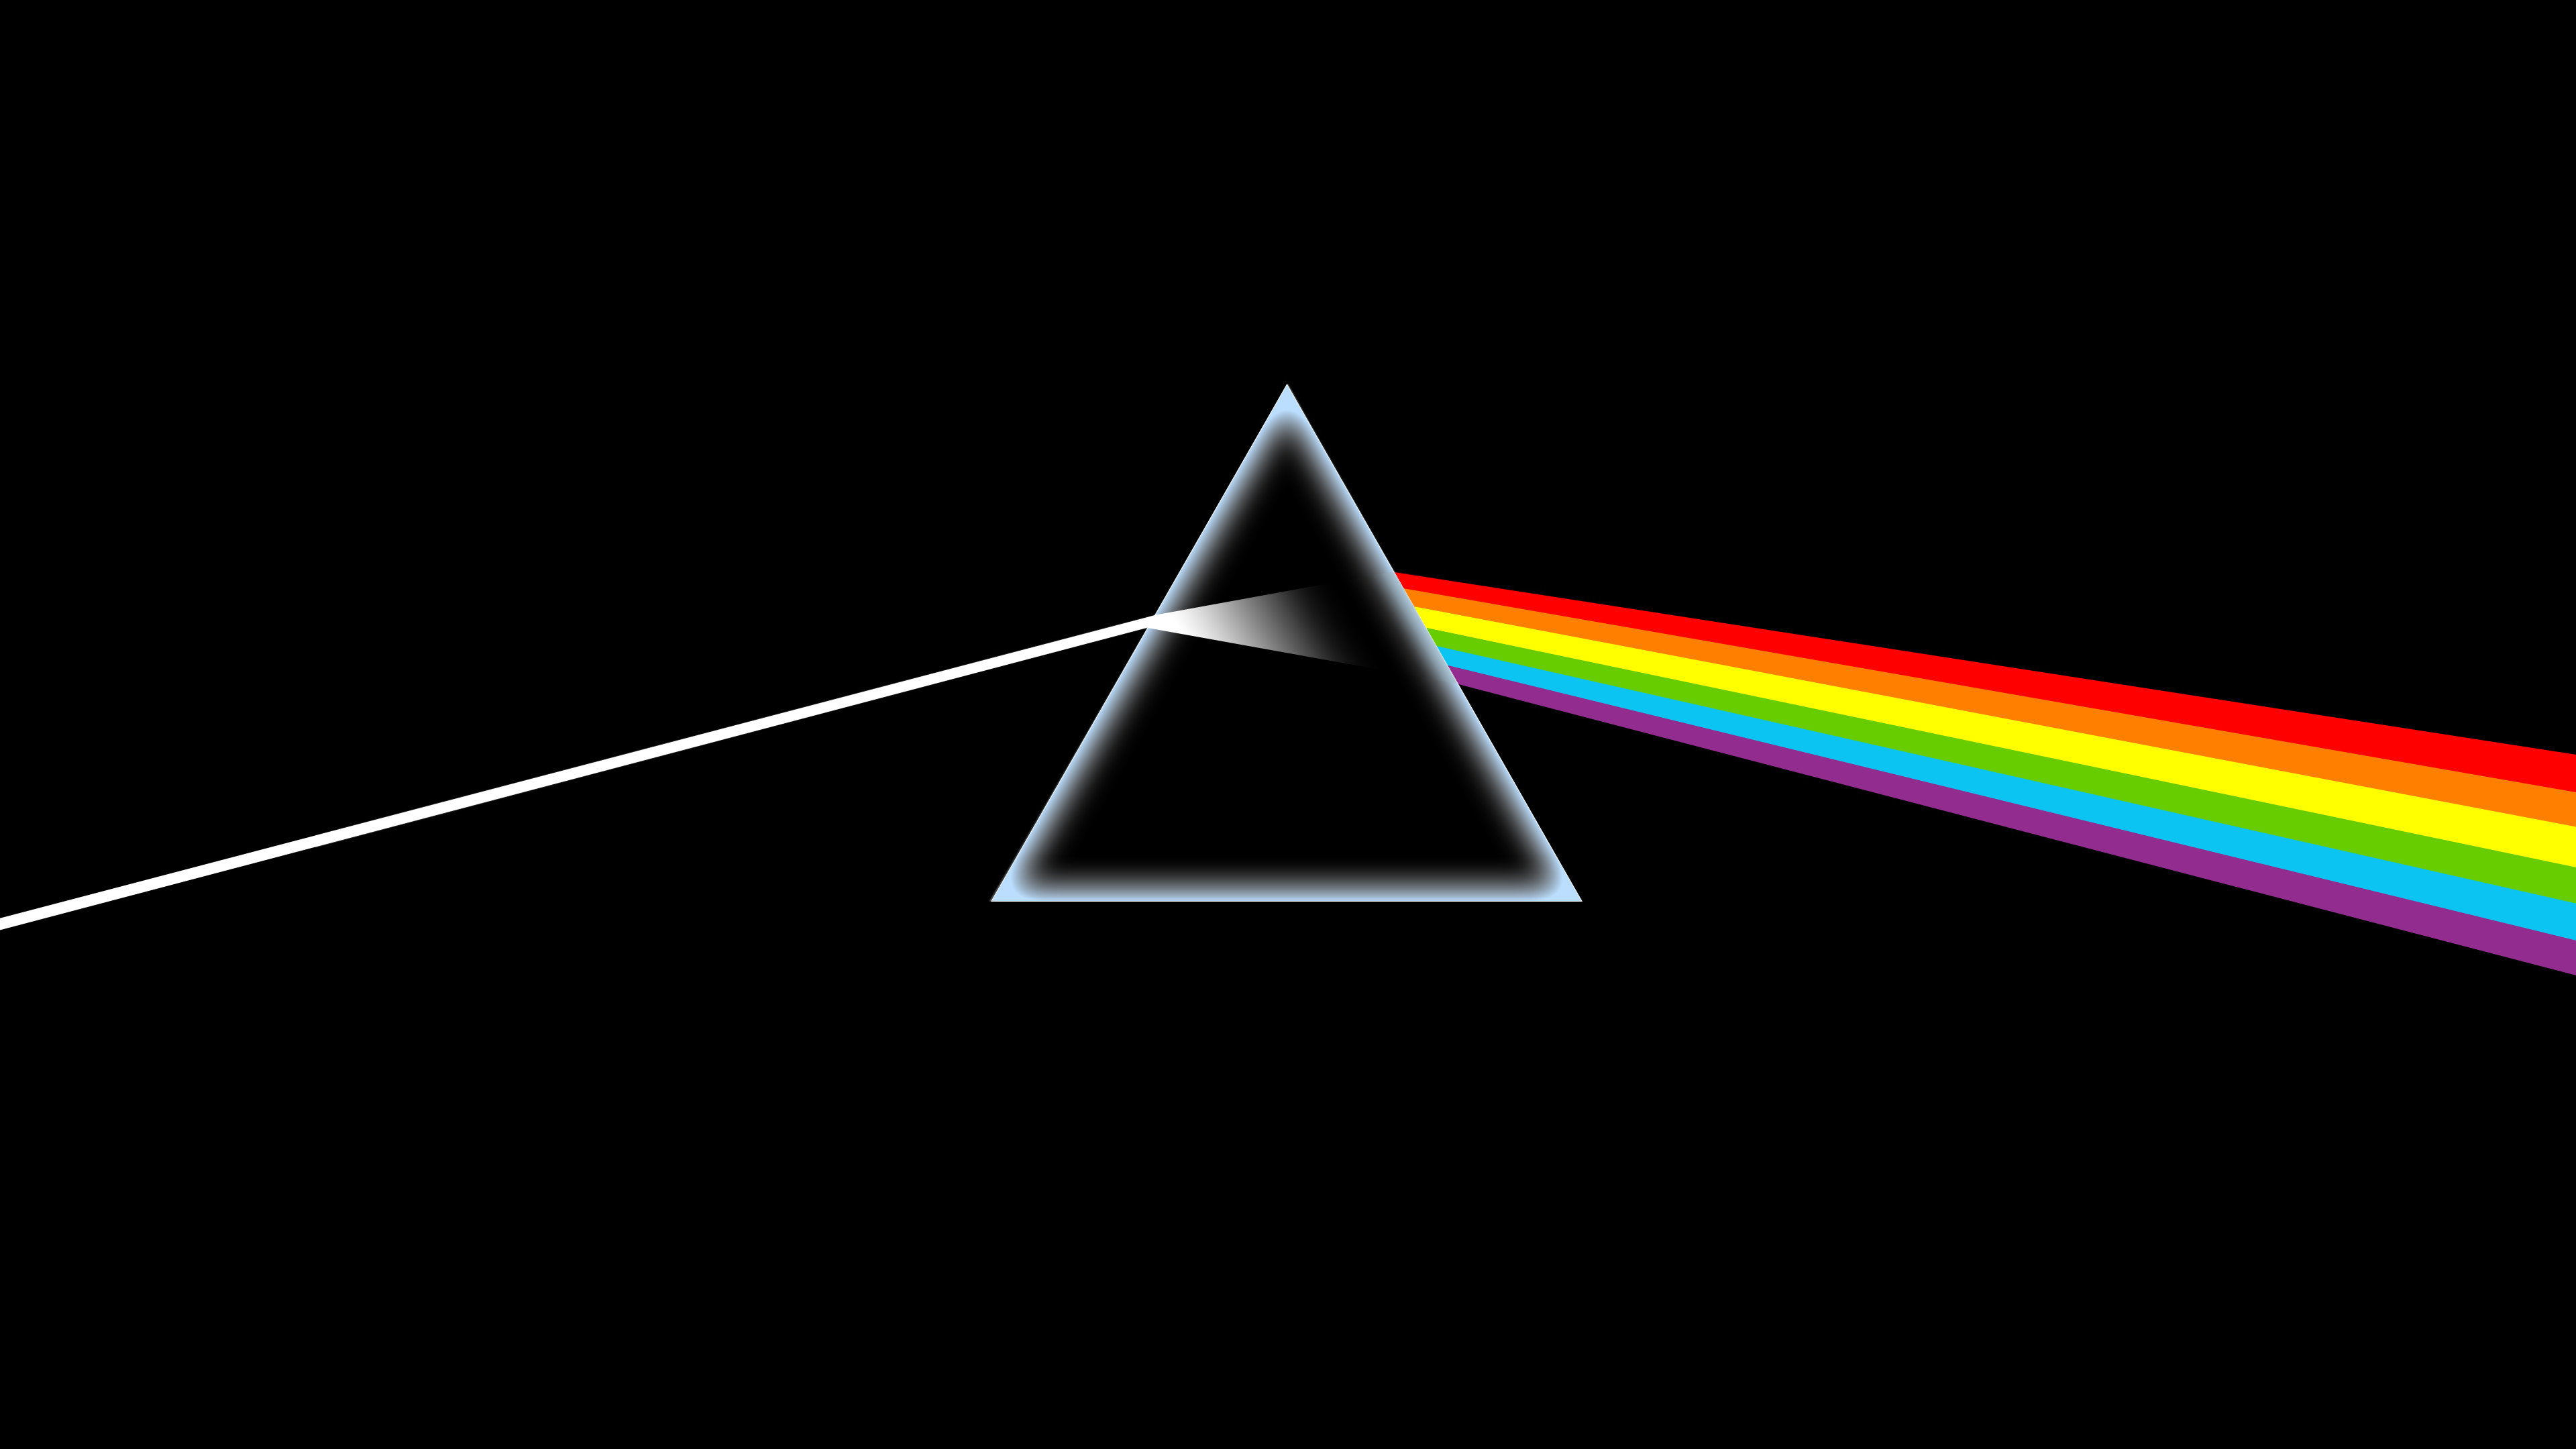 3840x2160 The Dark Side Of The Moon album cover; upscaled to 4k [OC]